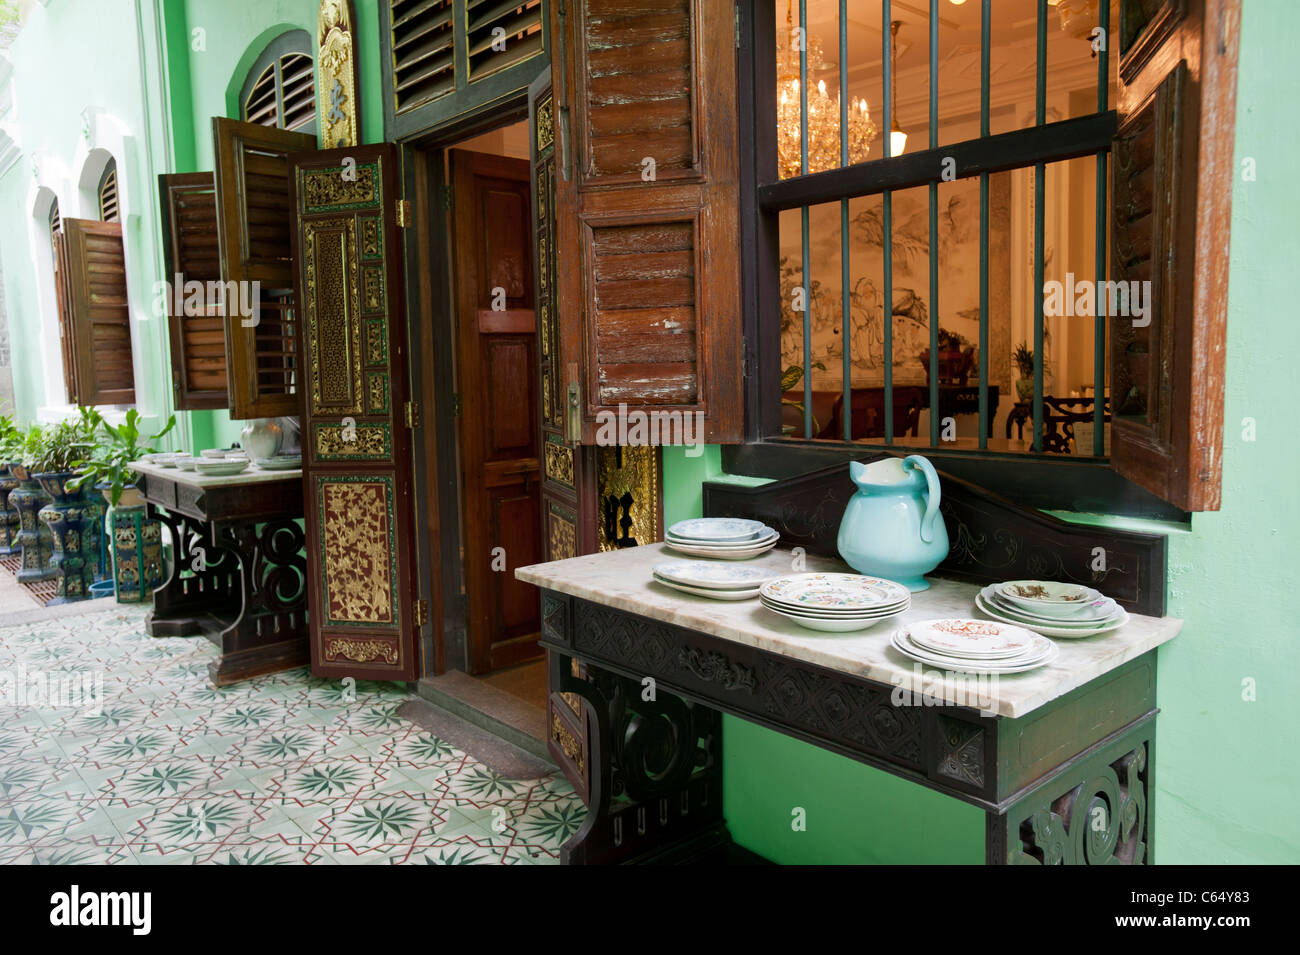 Kitchen Area in the Peranakan Mansion, George Town, Penang Malaysia - Stock Image